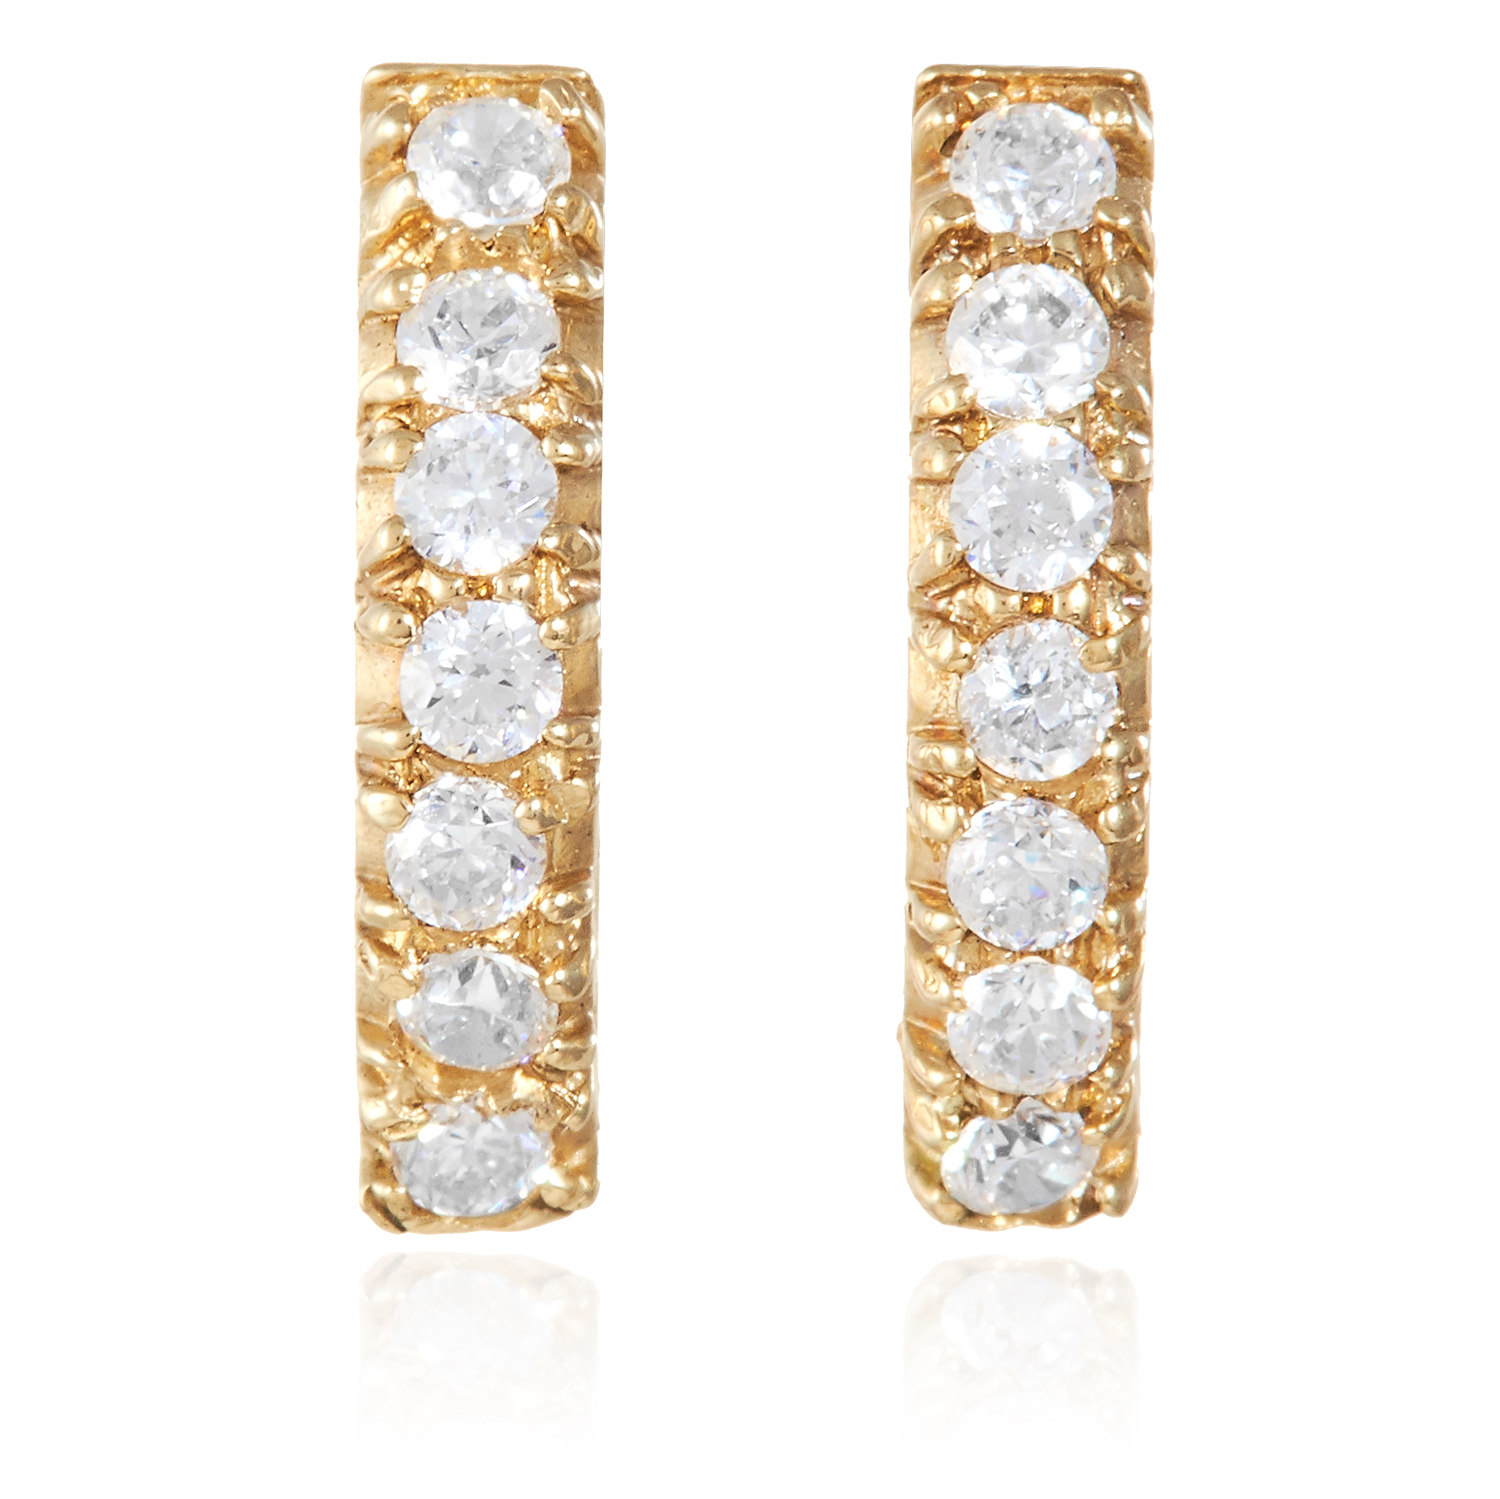 A PAIR OF HALF HOOP GEMSTONE SET EARRINGS in yellow gold, each set with seven round cut clear